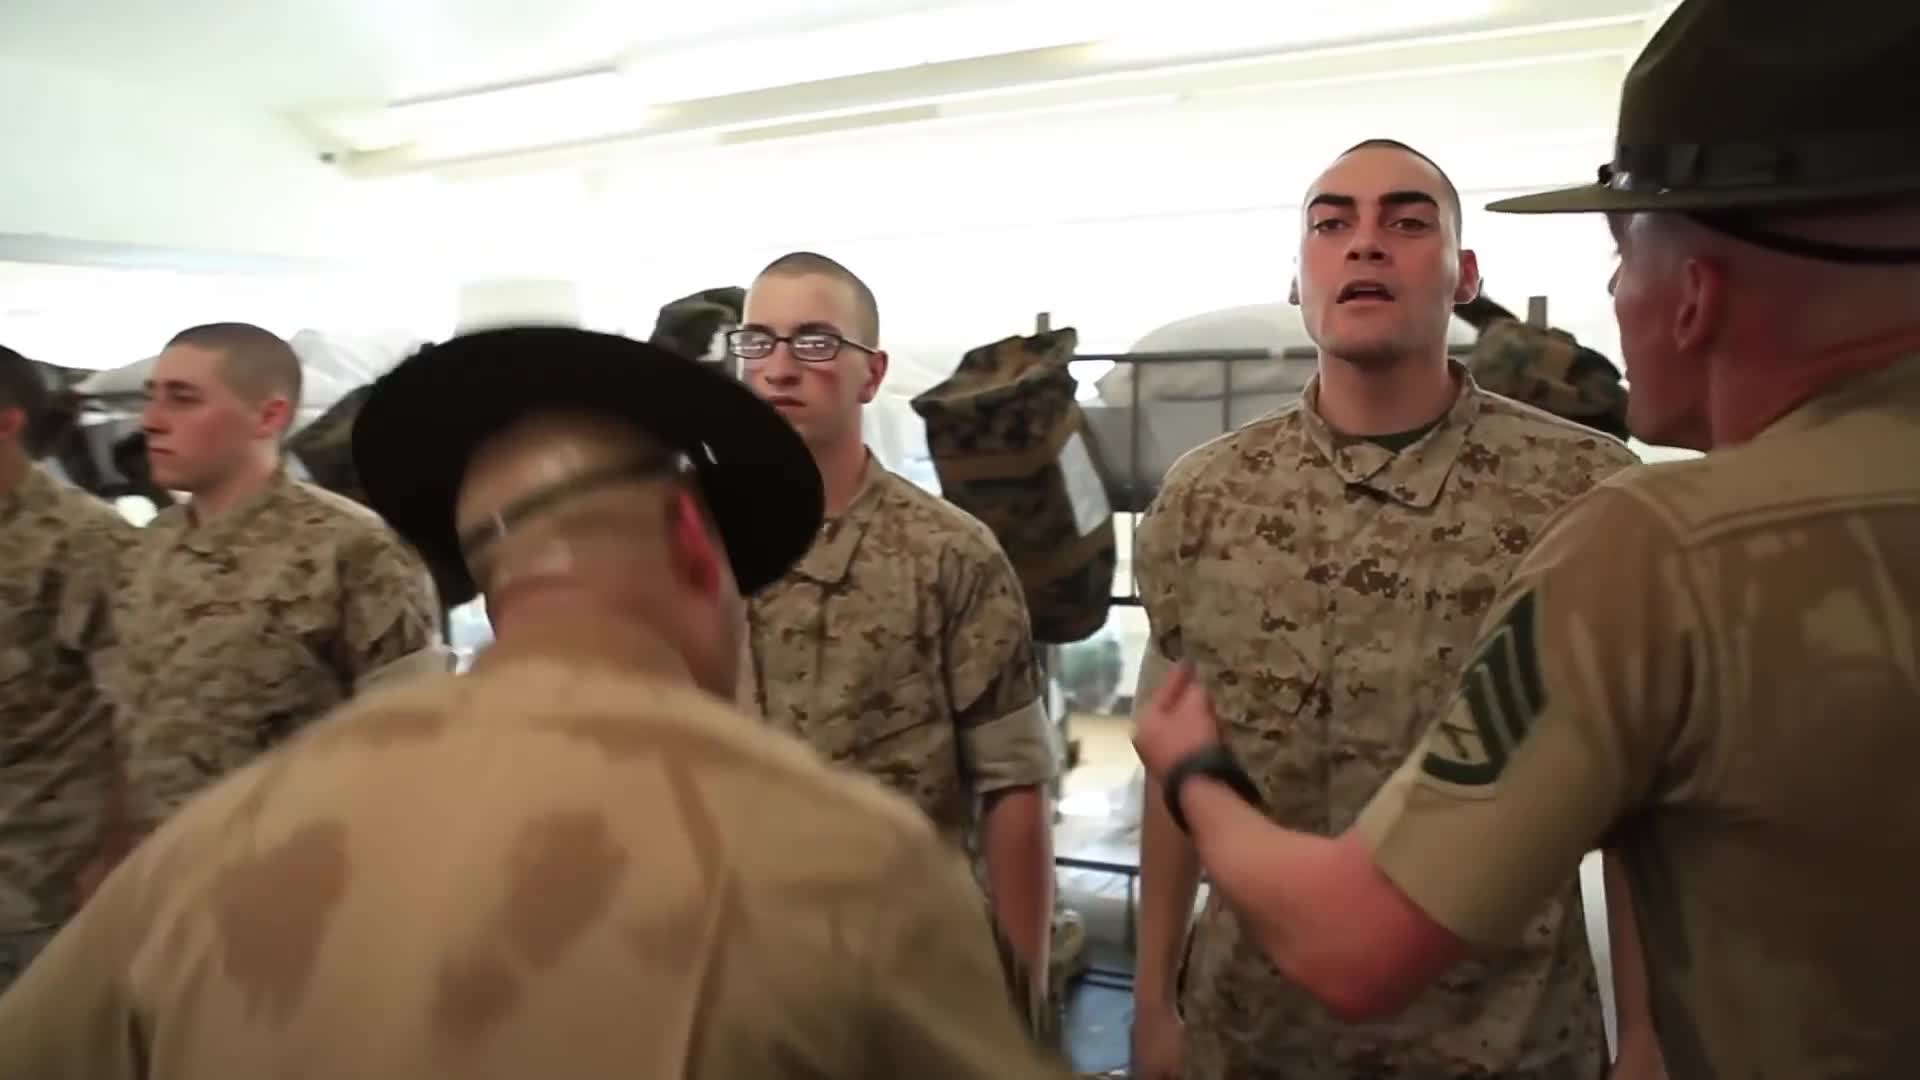 aiirsource military, armed forces, basic training, boot camp, boot camp training, drill instructors, marine corps, marines, military, military exercise, military training, military videos, people & blogs, recruits, us military, usmc, yelling,